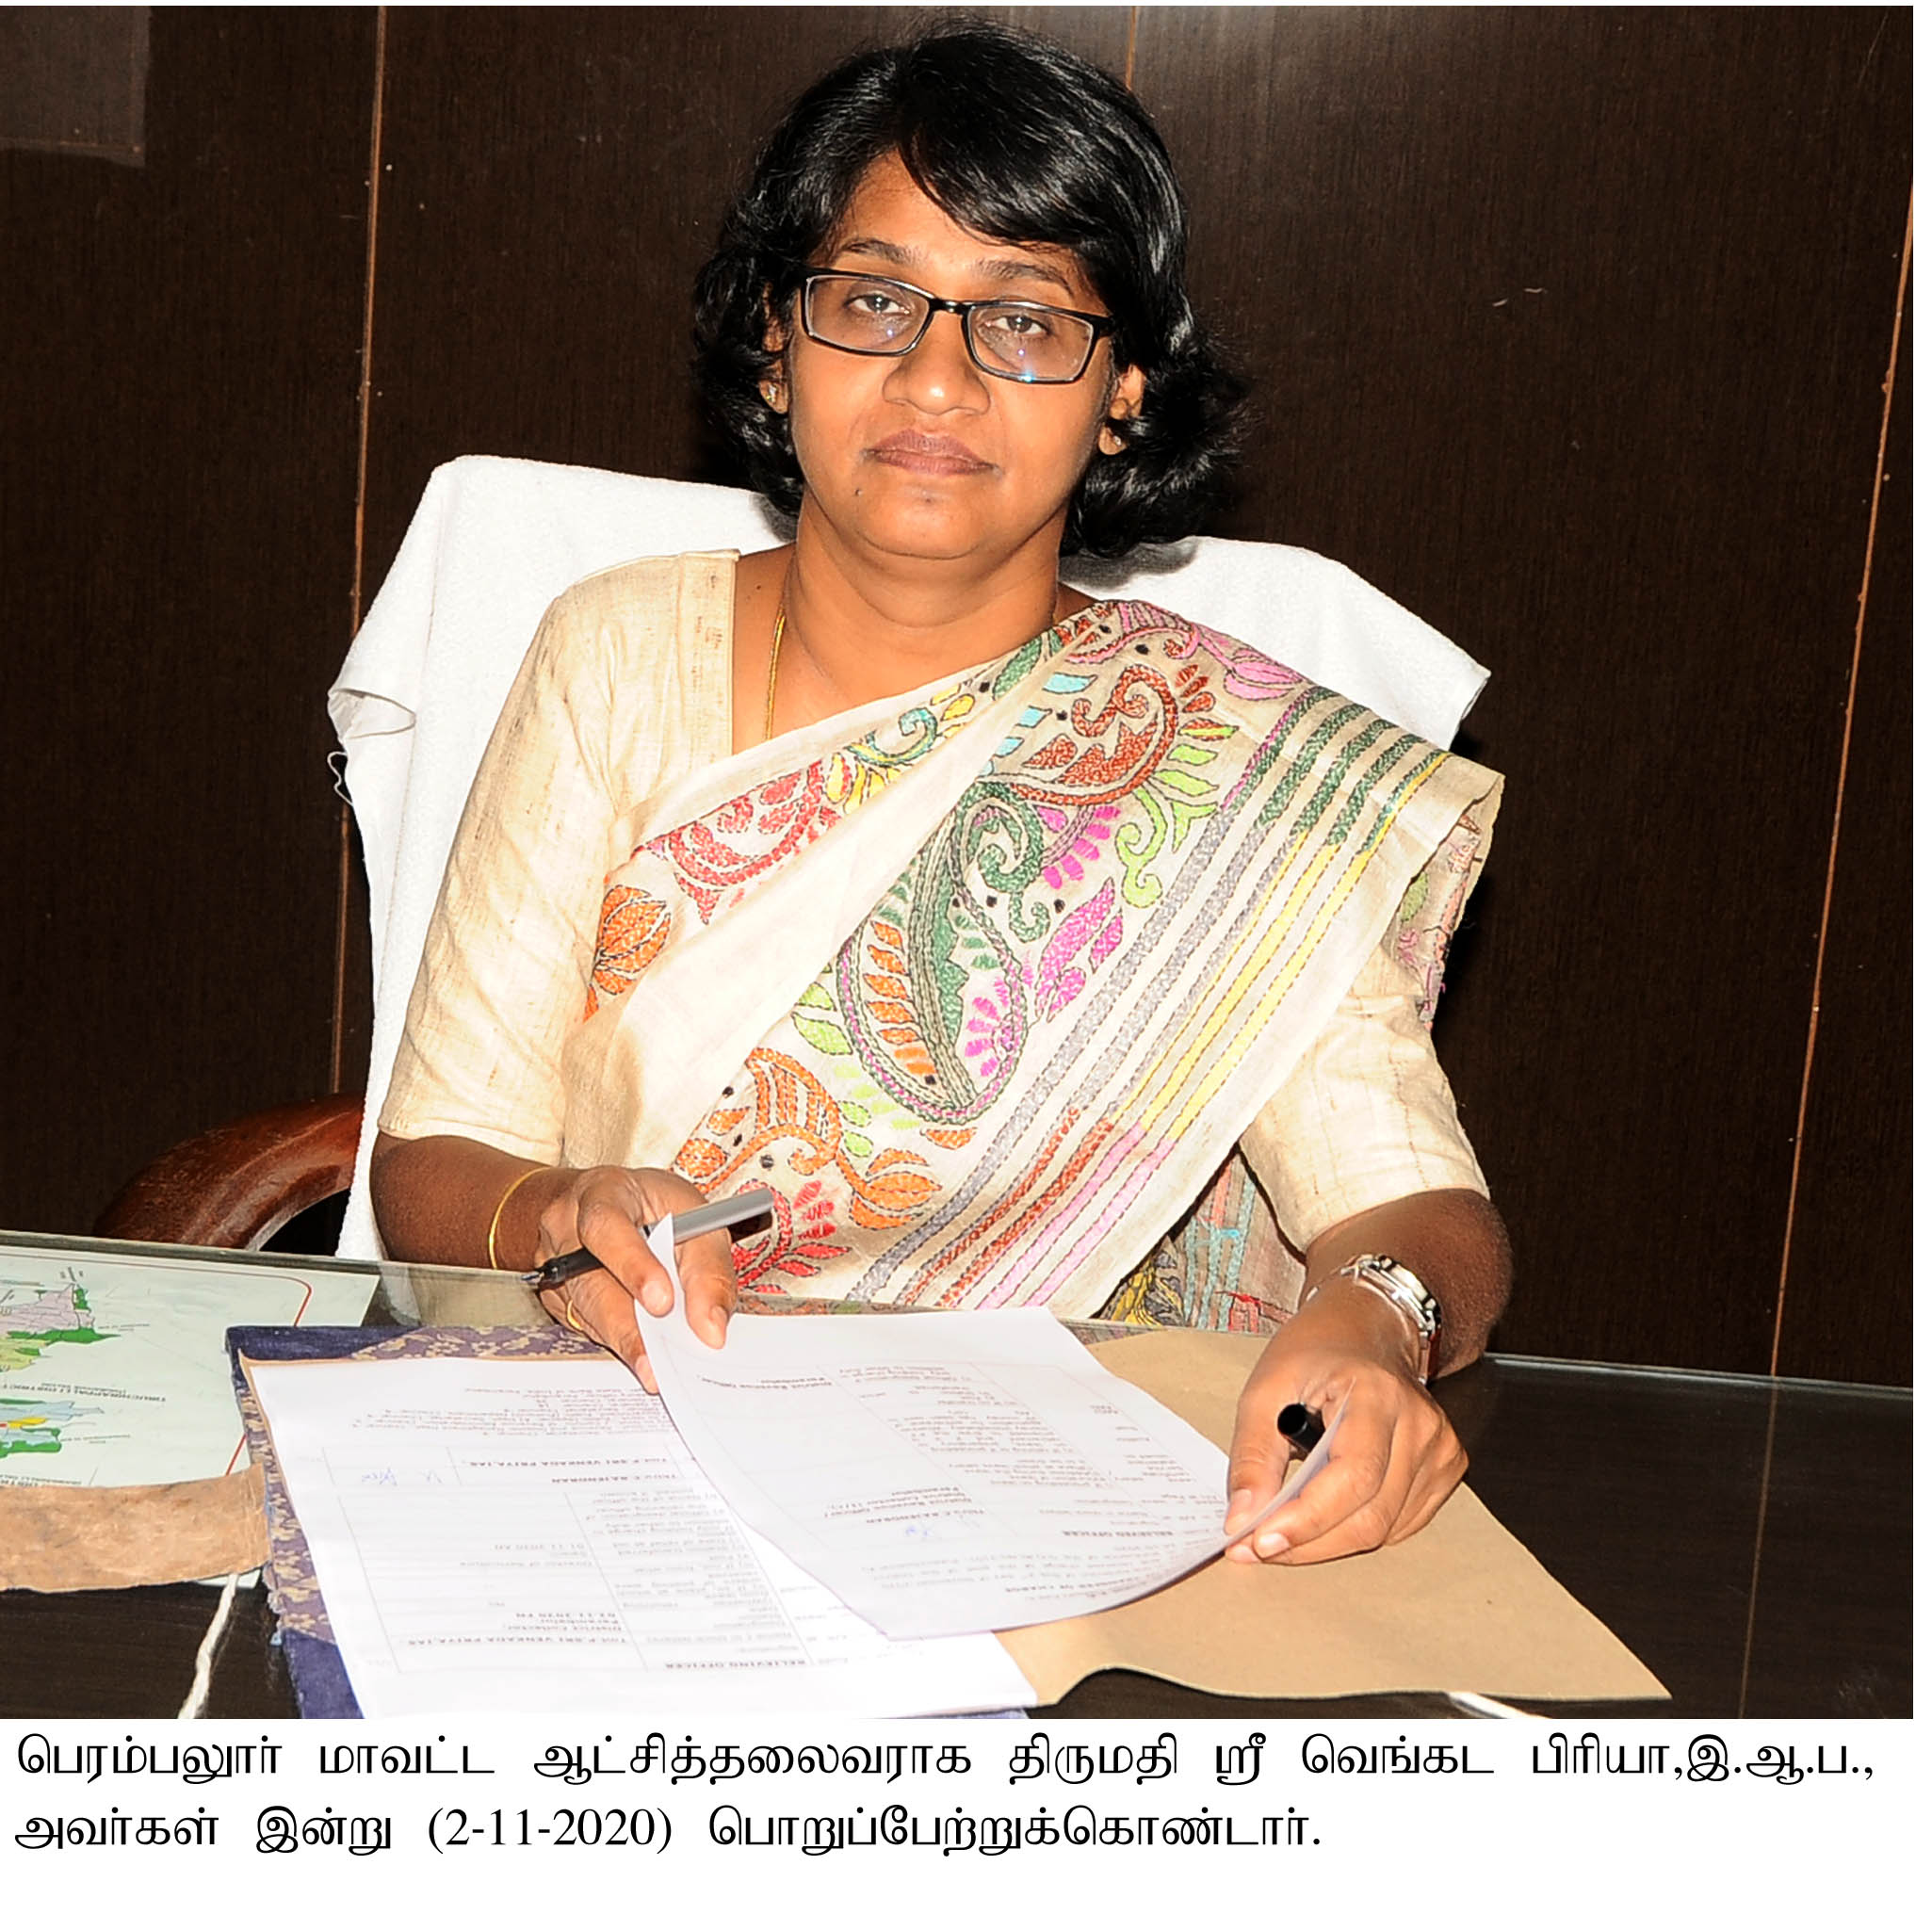 Tmt. P. Sri Venkada Priya, I.A.S assumed charge as the 14th Collector for Perambalur District - 02.11.2020